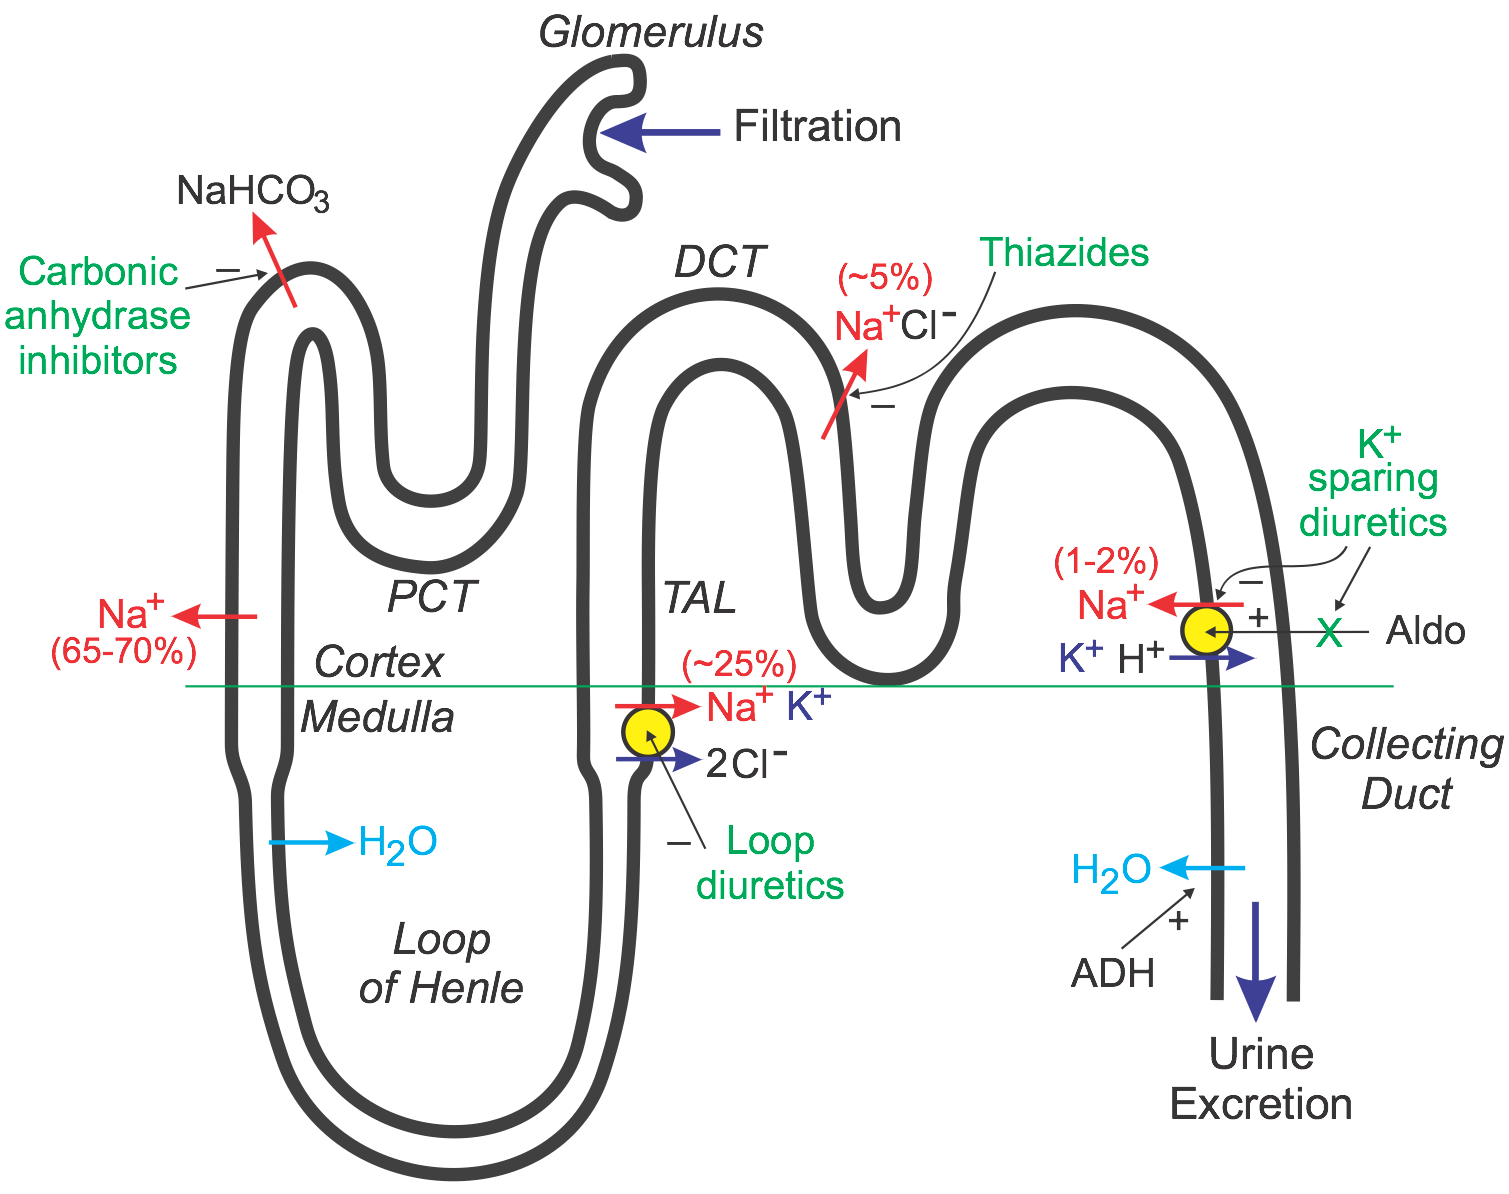 lasix mechanism of action